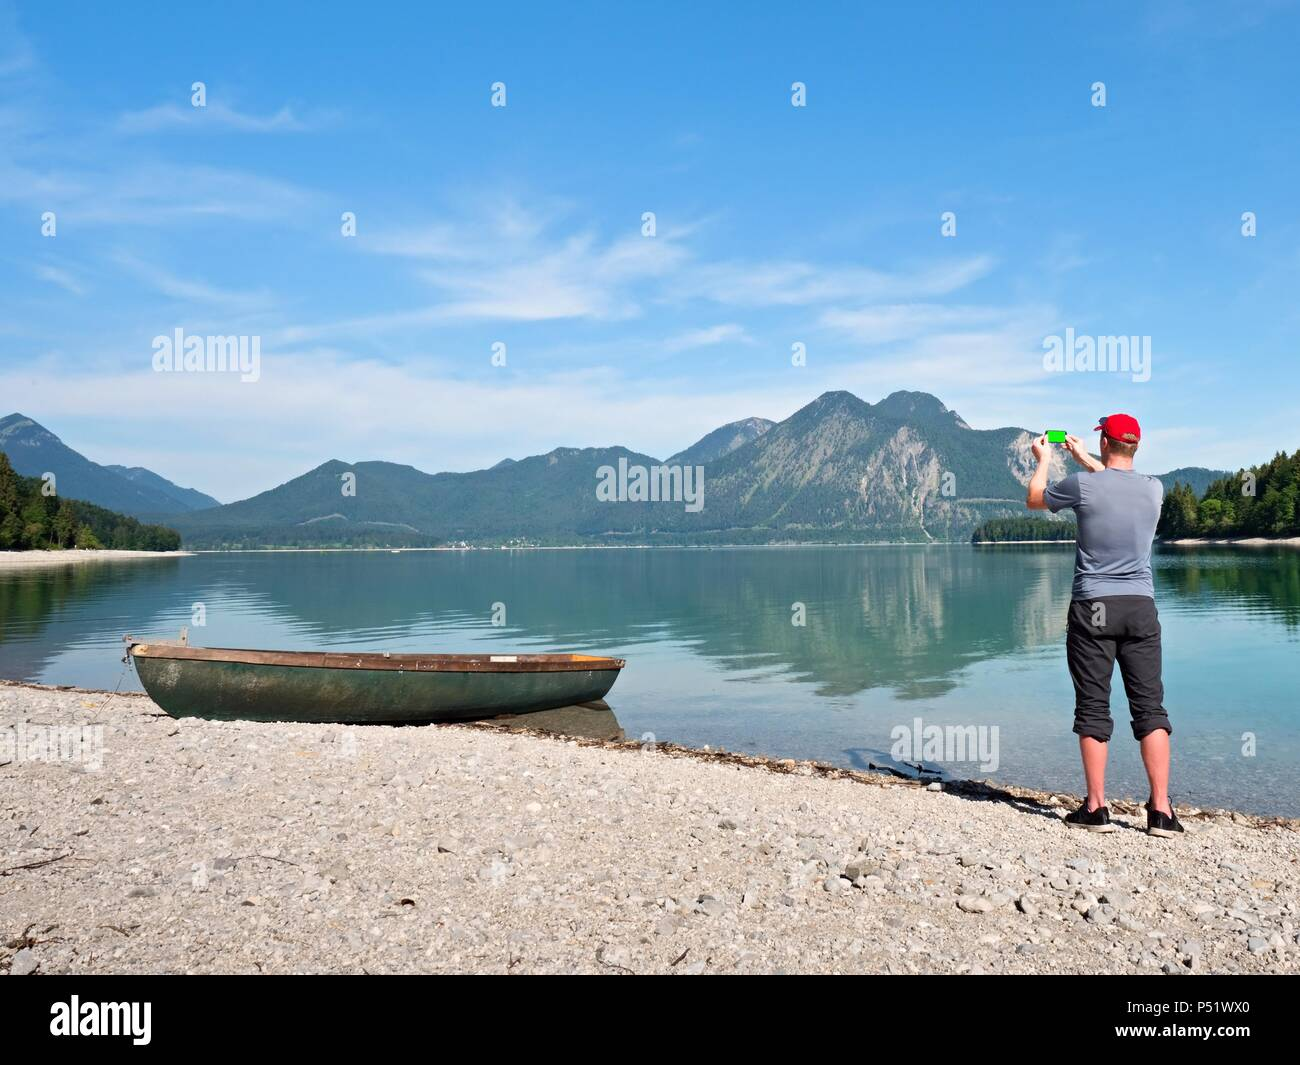 Photographer with eye at viewfinder is taking photo of lake with Alps mountains in background. Artist works. - Stock Image